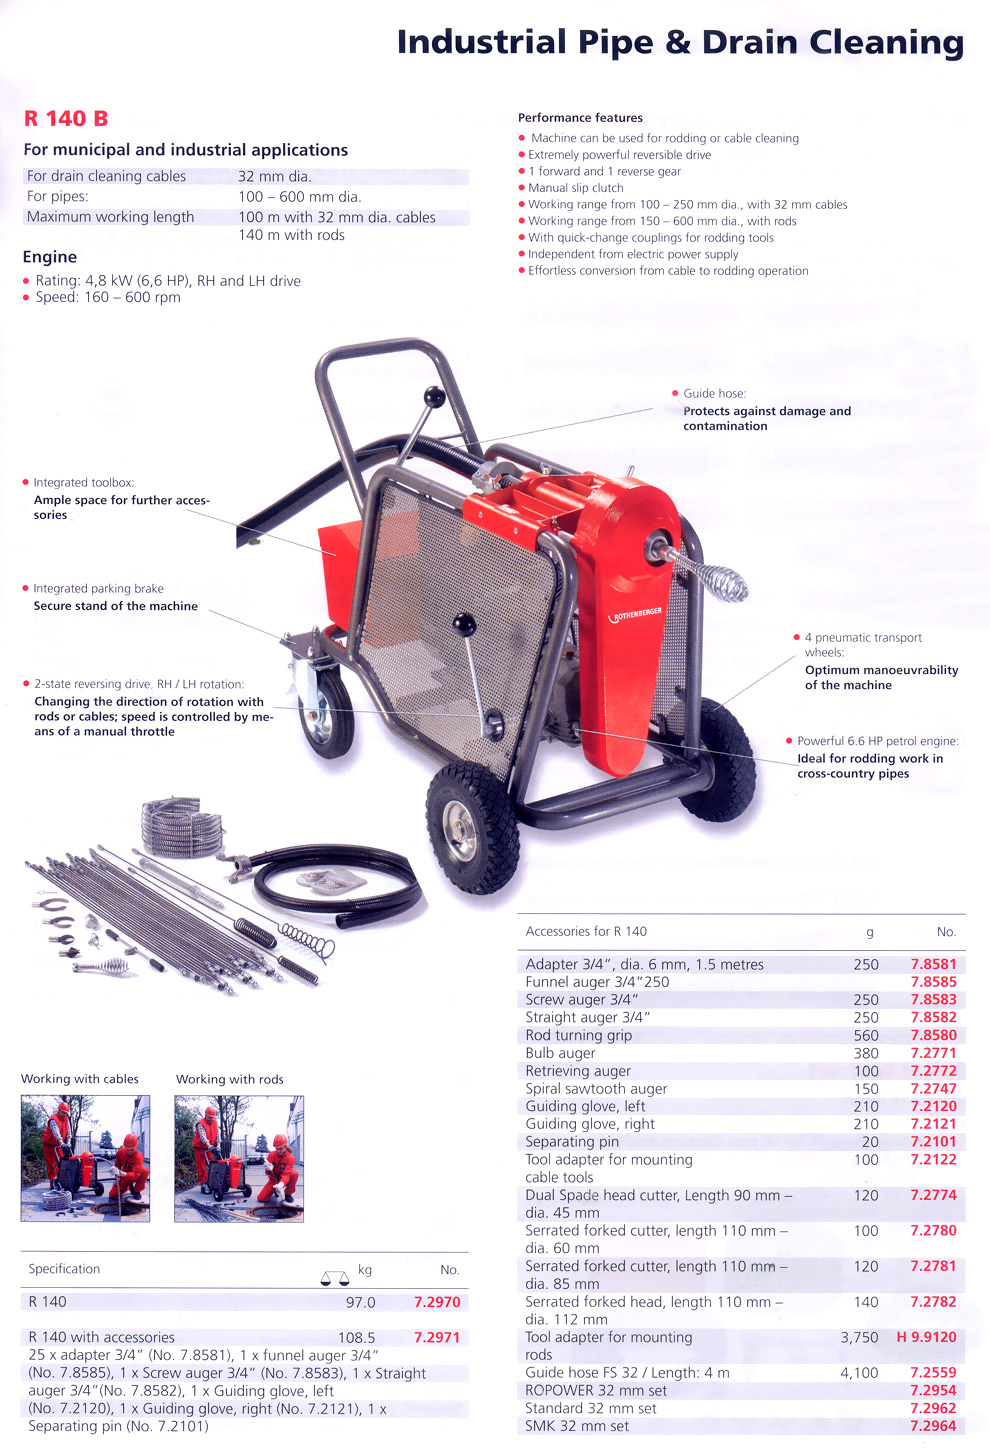 Industrial Pipe and Drain Cleaning Machines